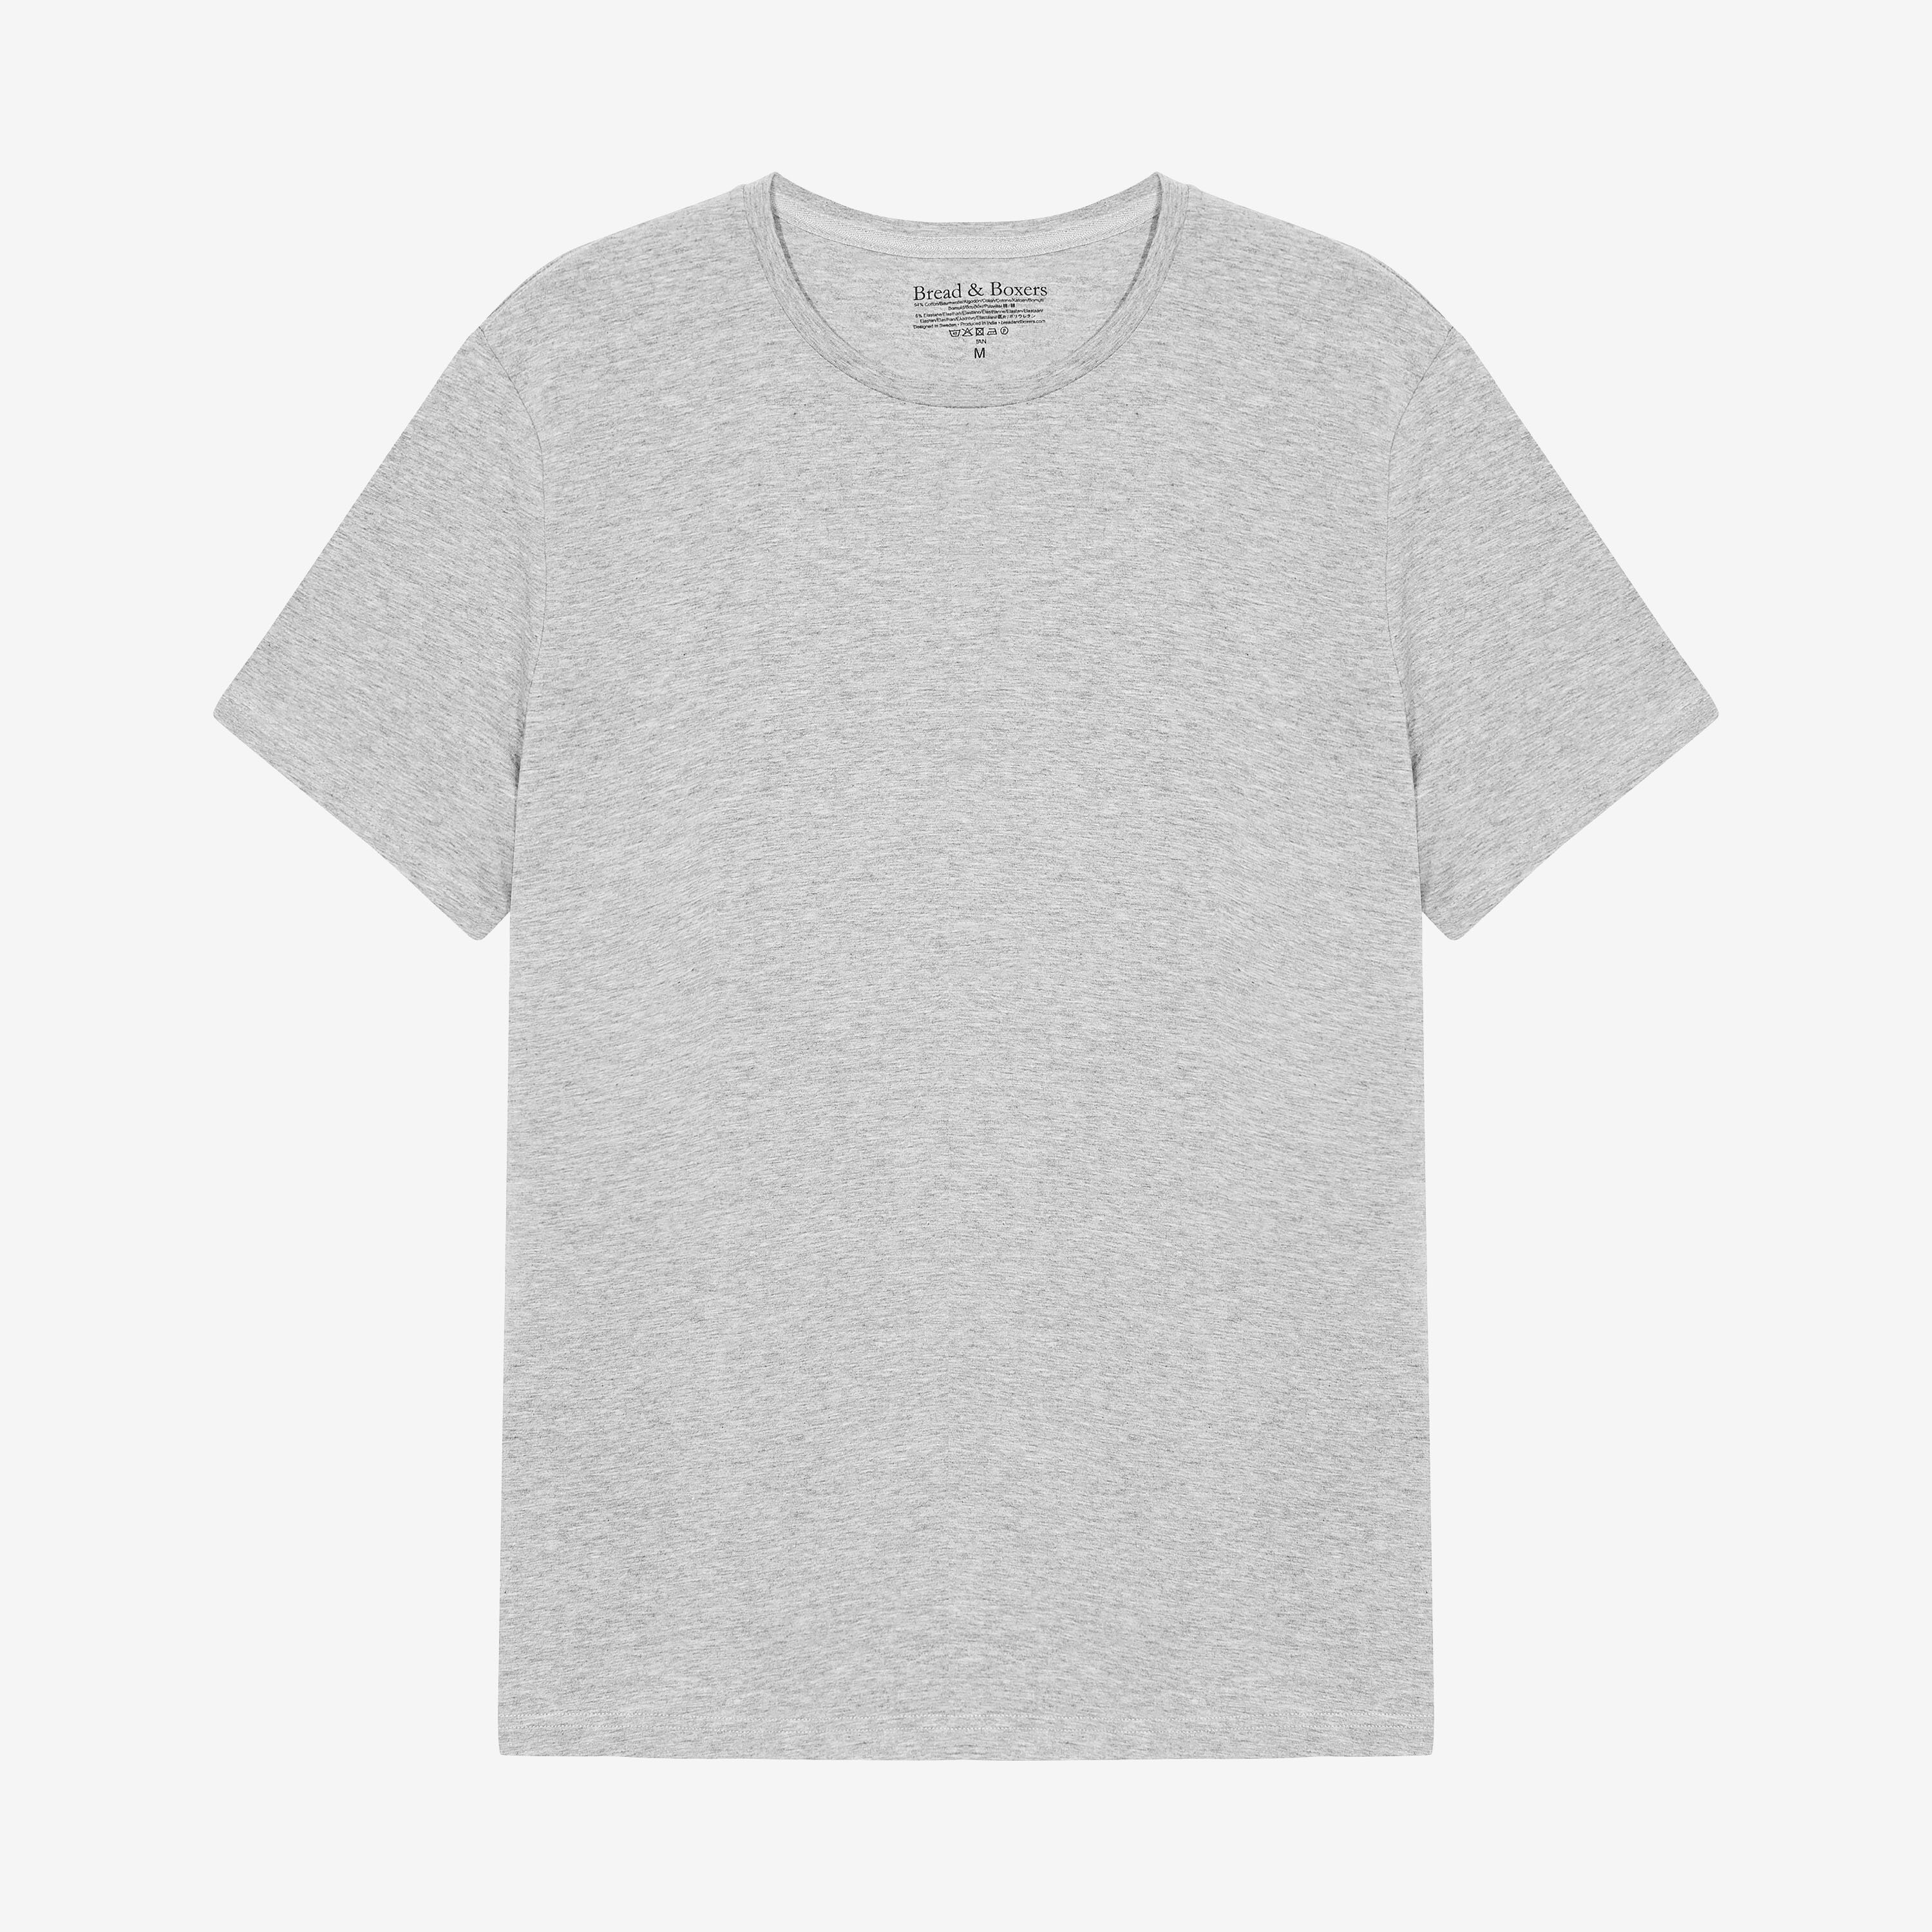 101203_Man_Crew-Neck_grey-melange_CO